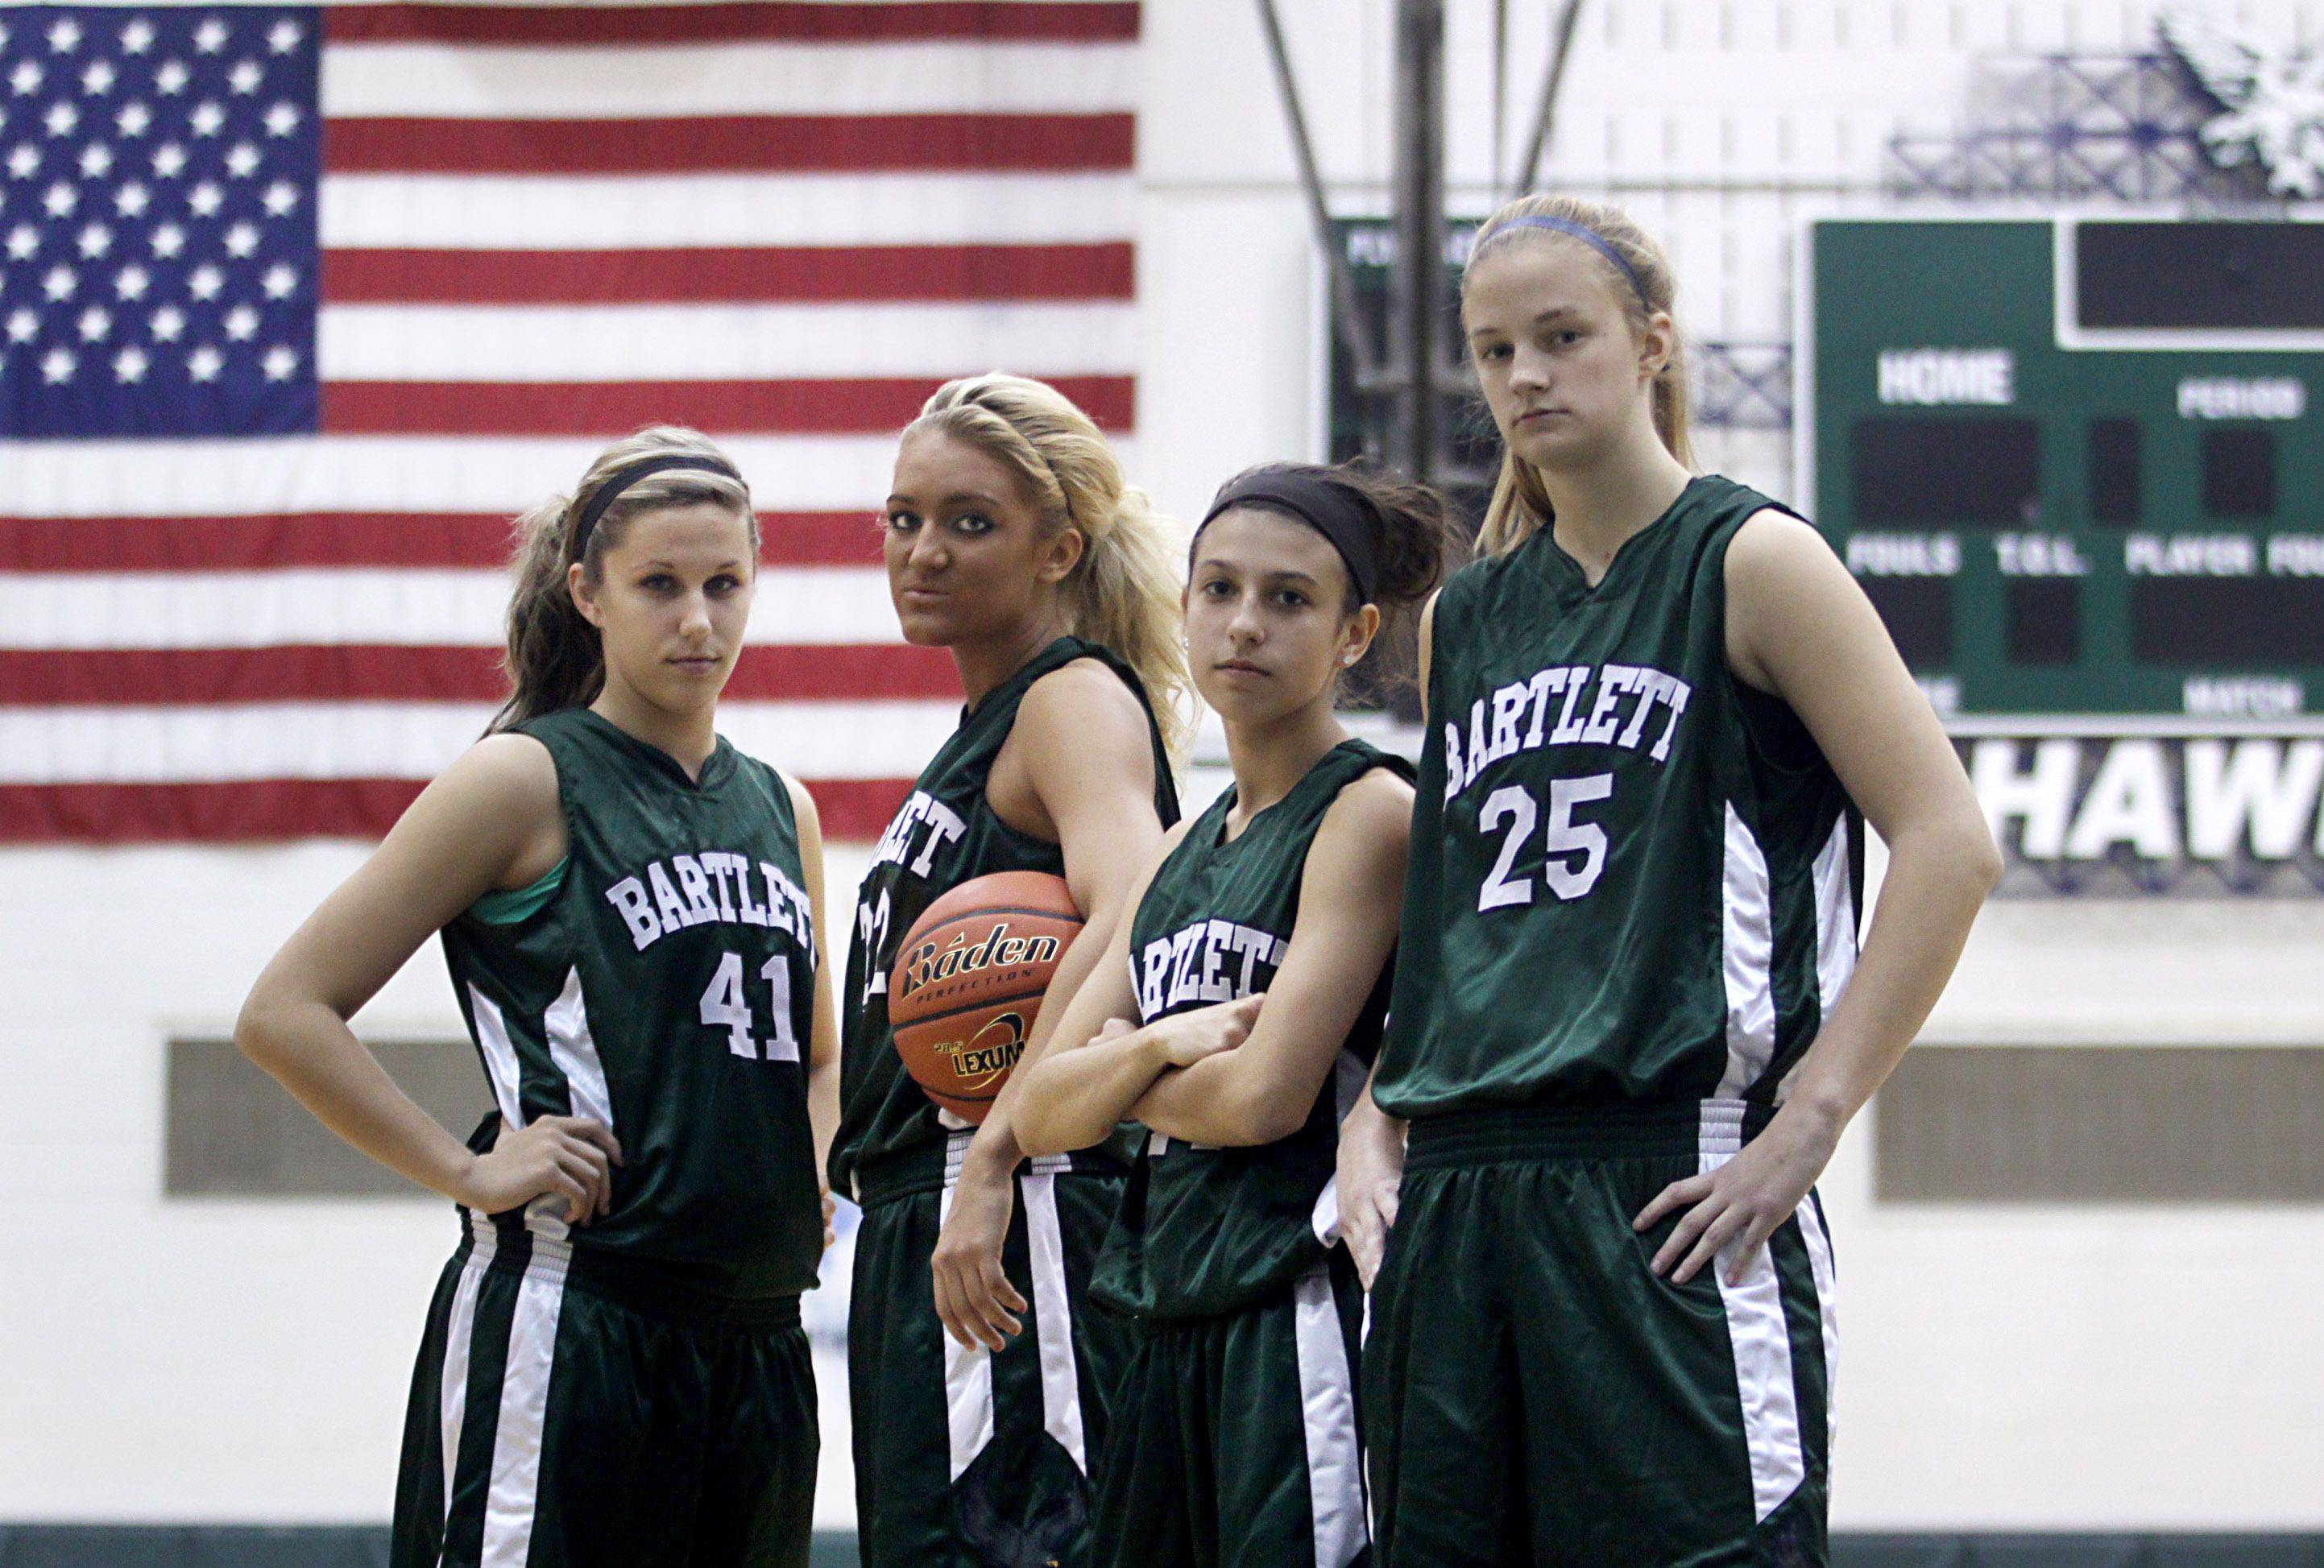 Leading the Hawks of Bartlett for the 2011-2012 season are, from left, Lisa Palmer, Haley Videckis, Janessa Baker, and Kristin Conniff.